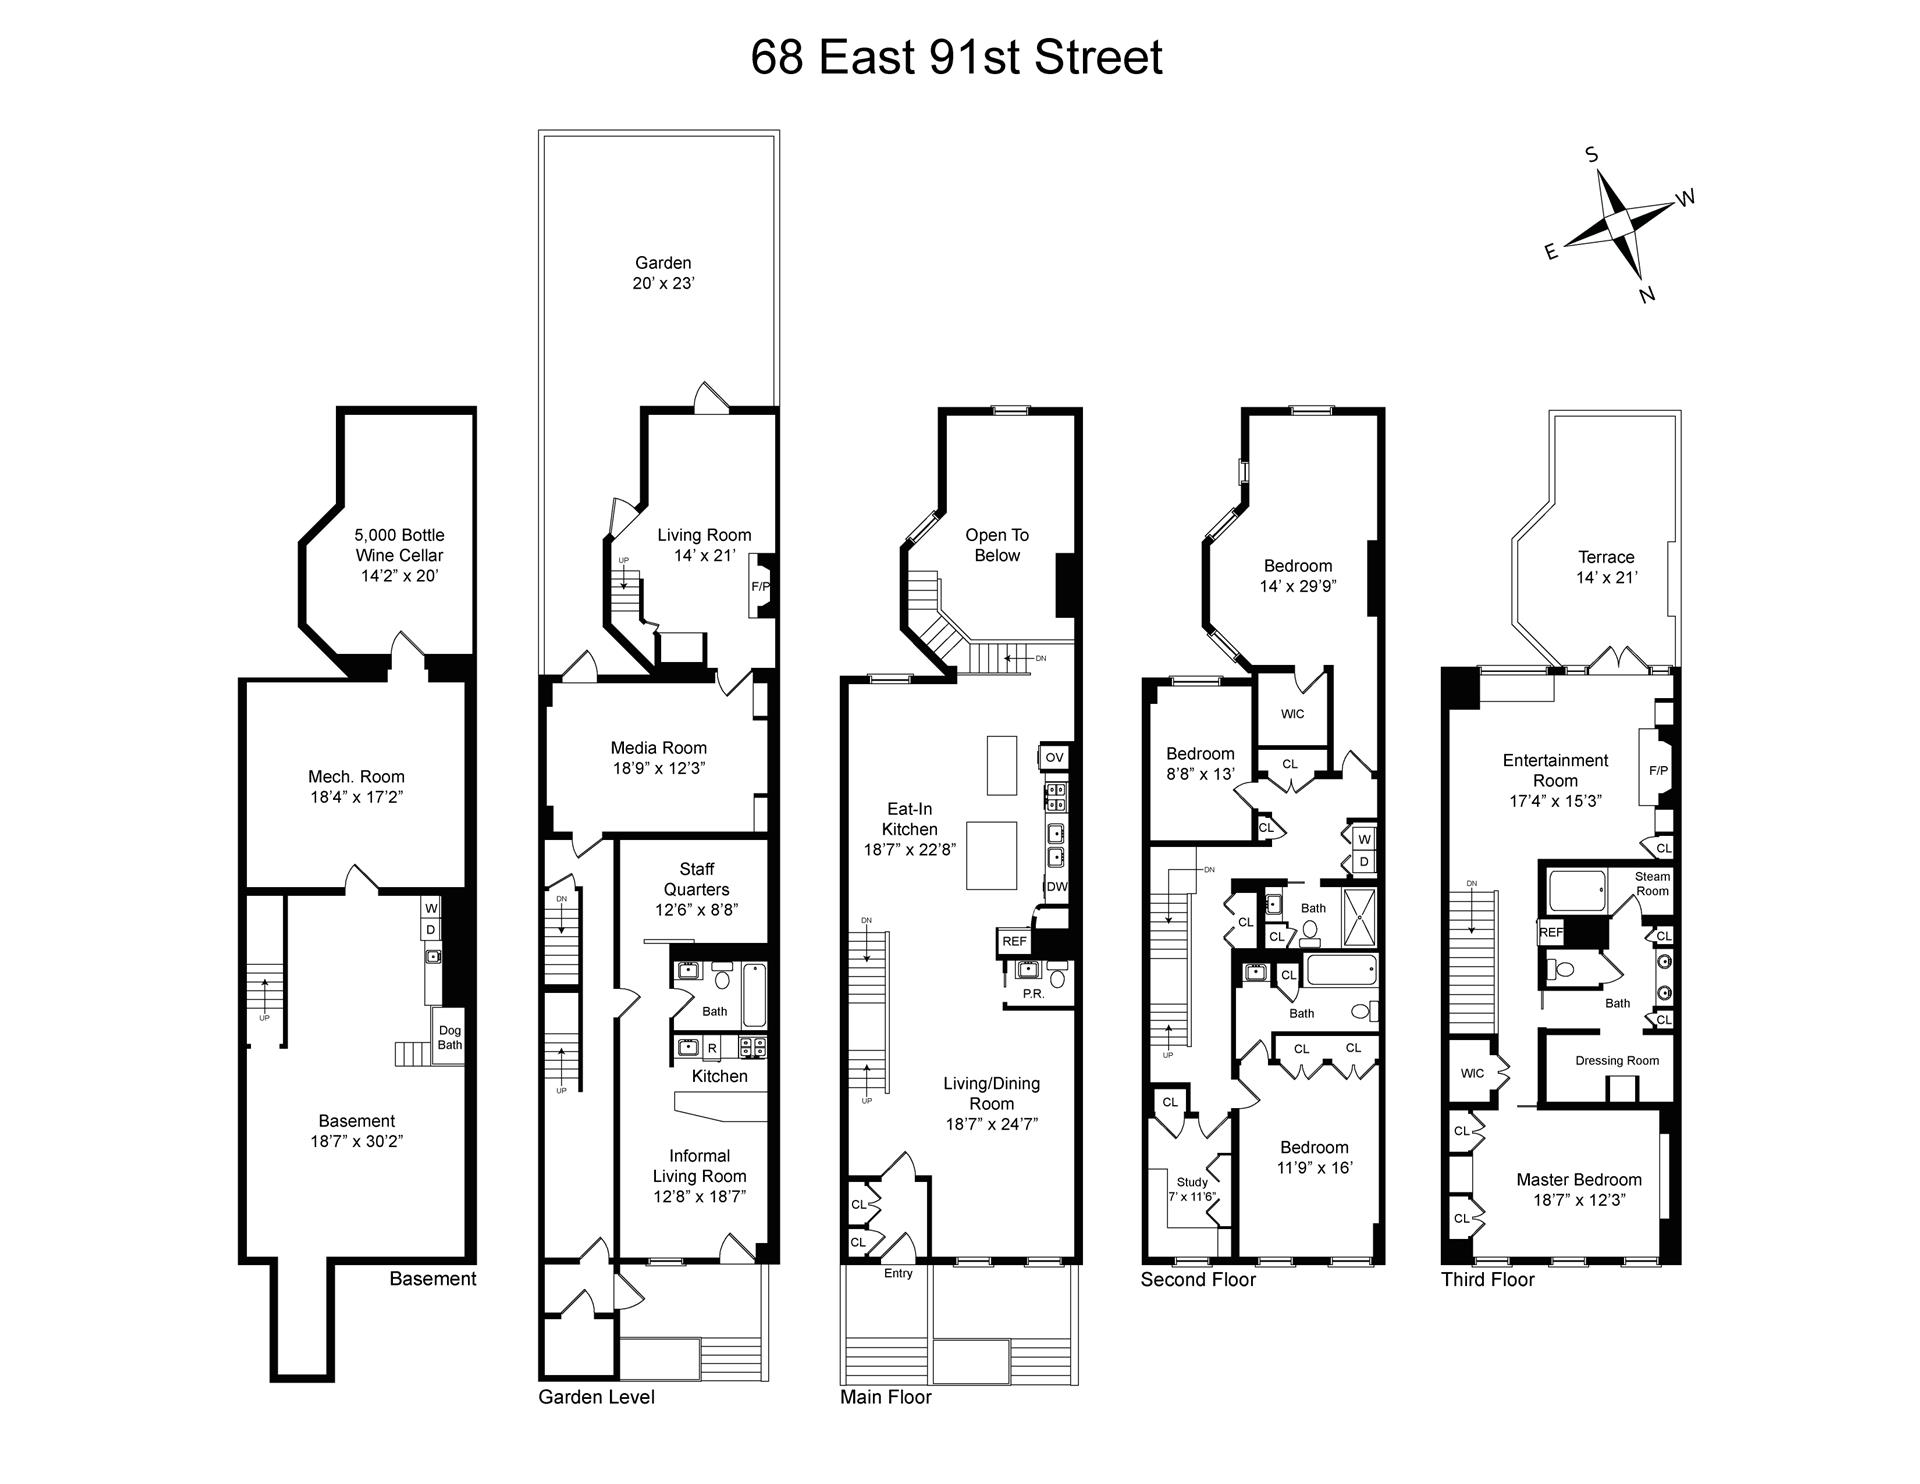 Floor plan of 68 East 91st St - Carnegie Hill, New York